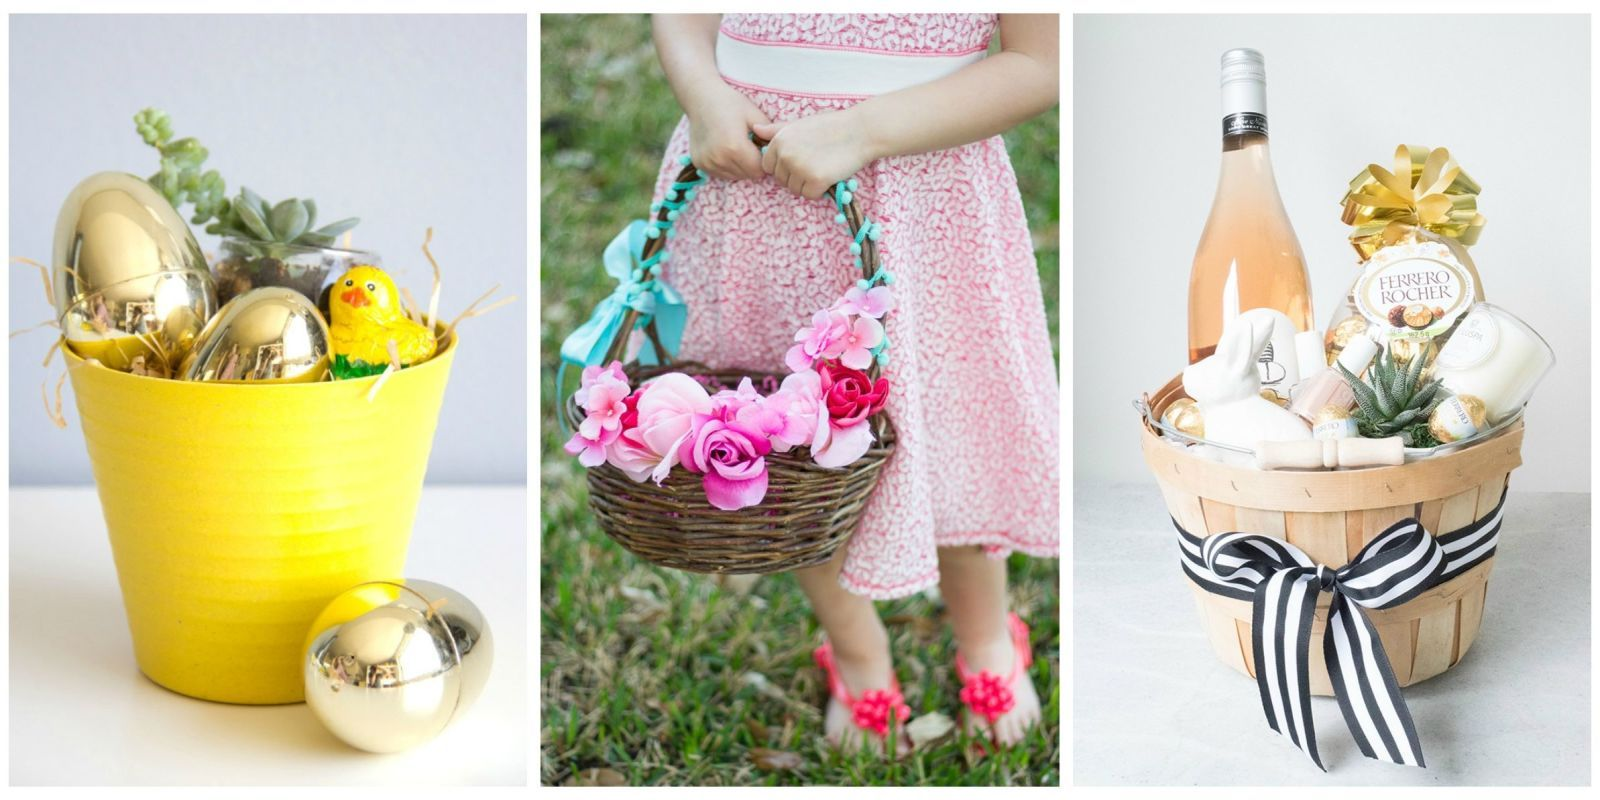 15 Cute Homemade Easter Basket Ideas Country Living Homemade Easter Baskets Easter Basket Diy Easter Baskets